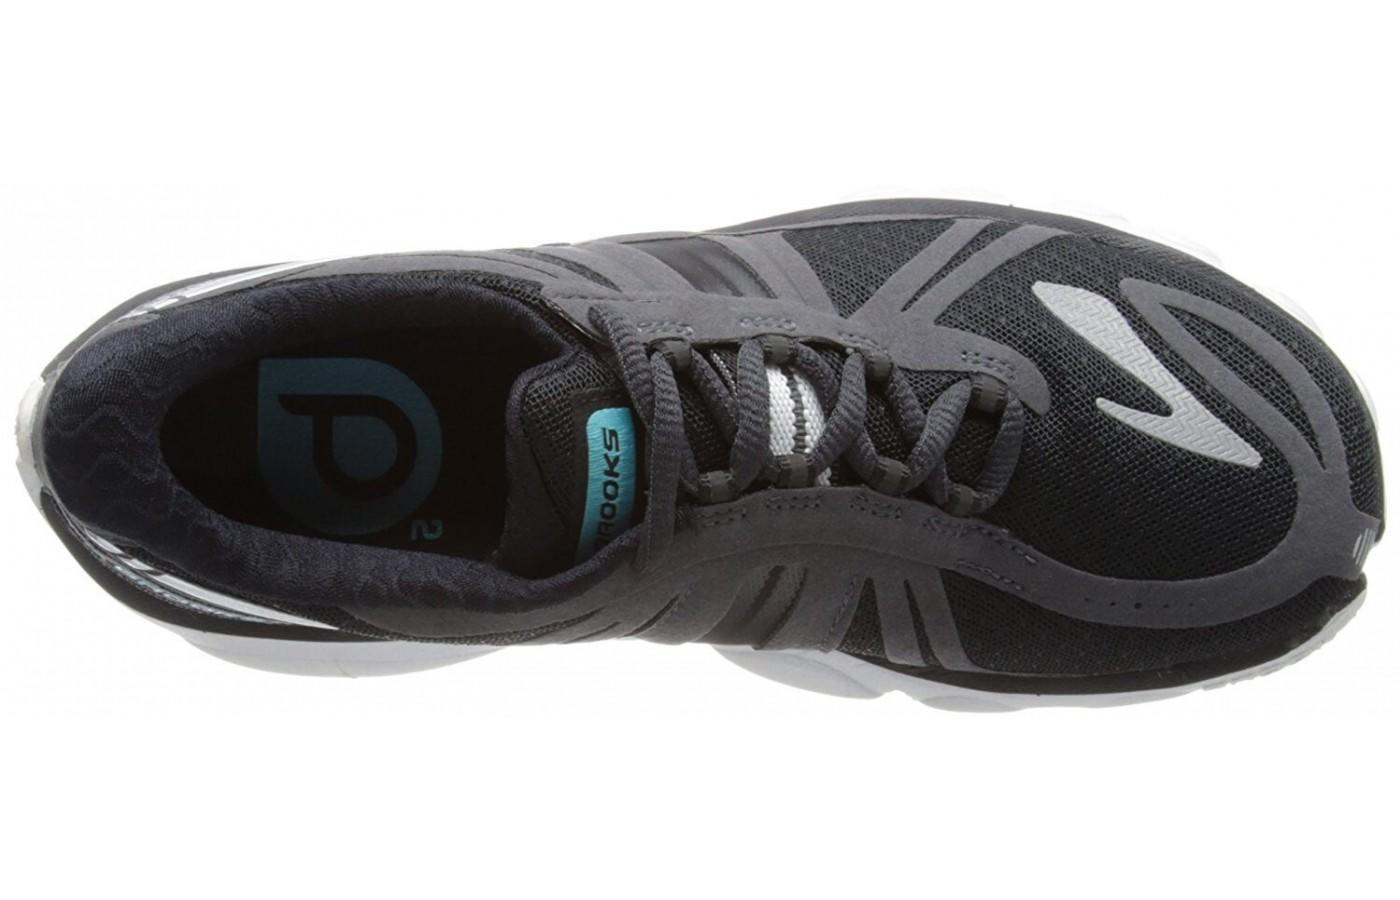 Highly breathable upper of the Brooks PureCadence